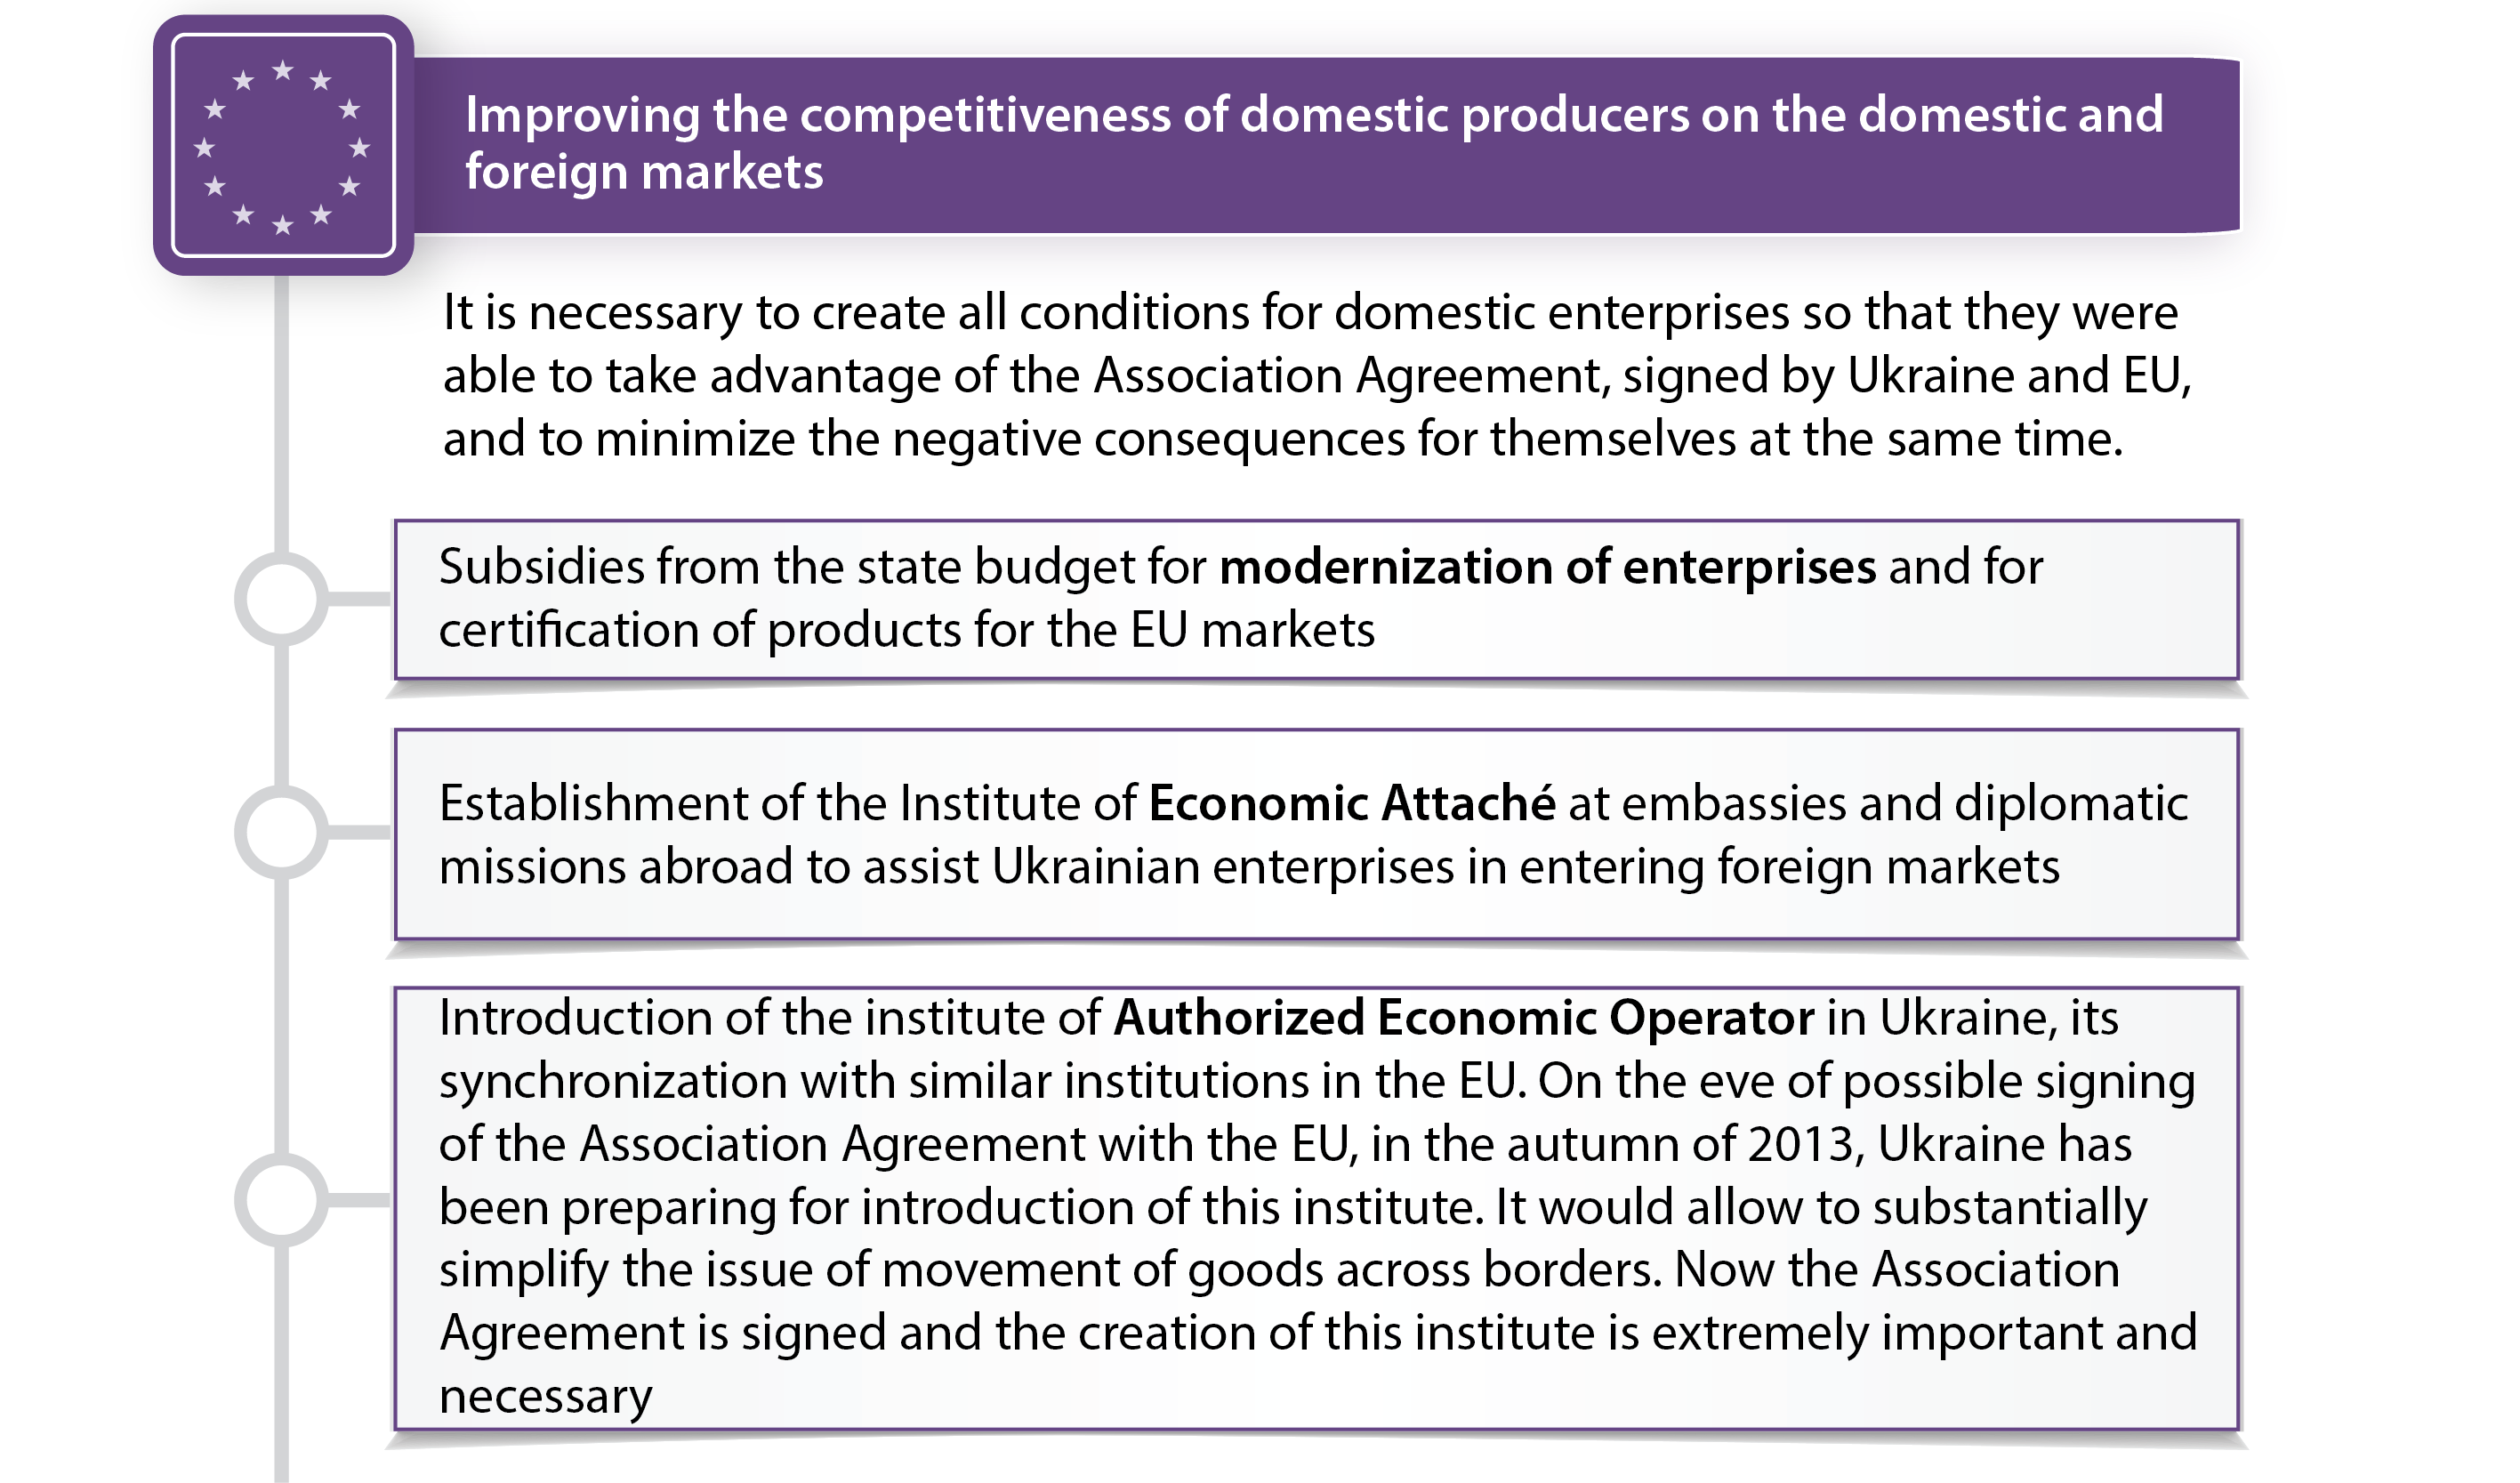 Improving the competitiveness of domestic producers on the domestic and foreign markets